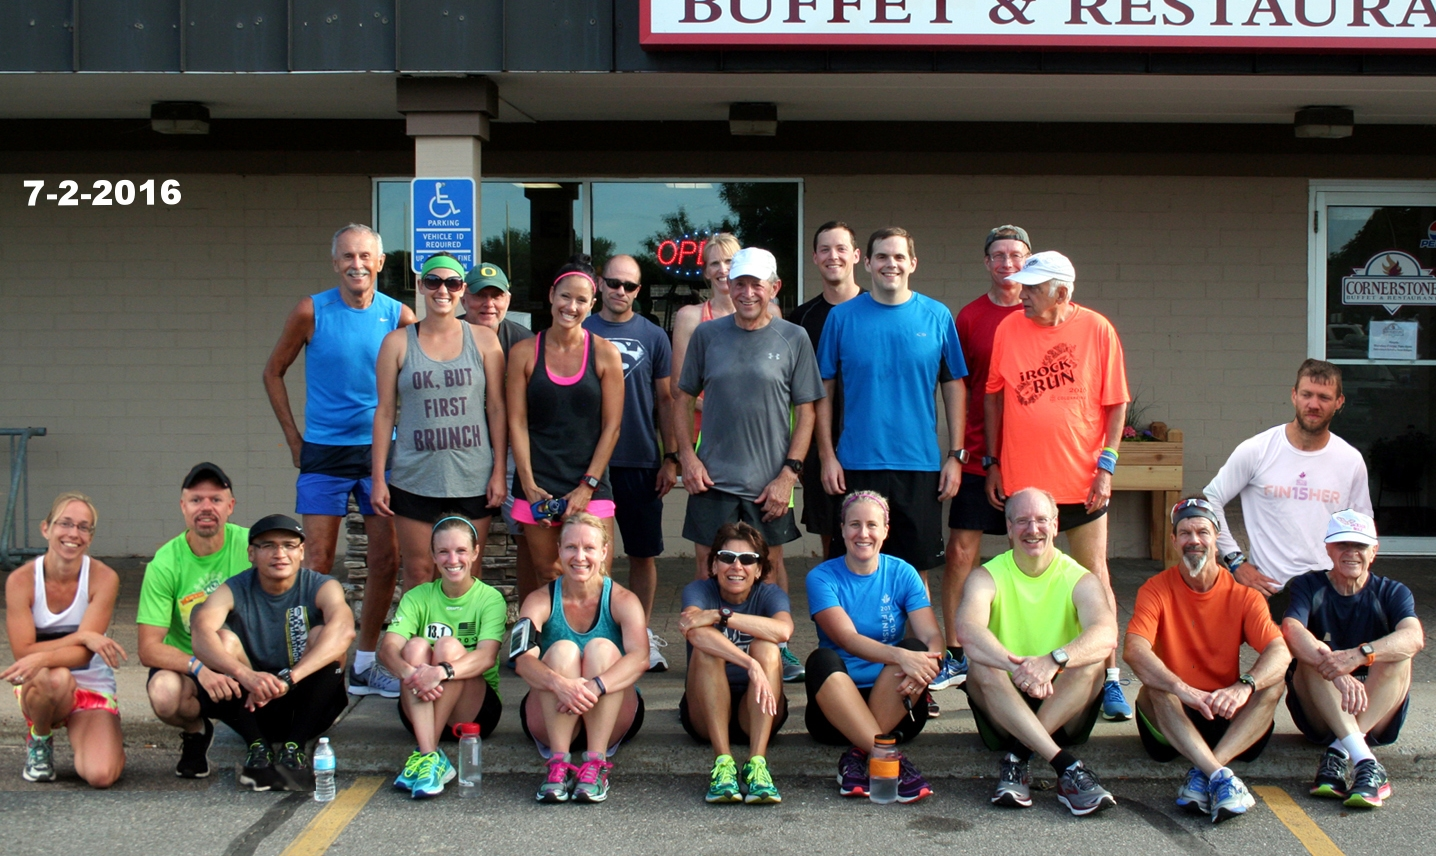 Breakfast Run 7-2-2016